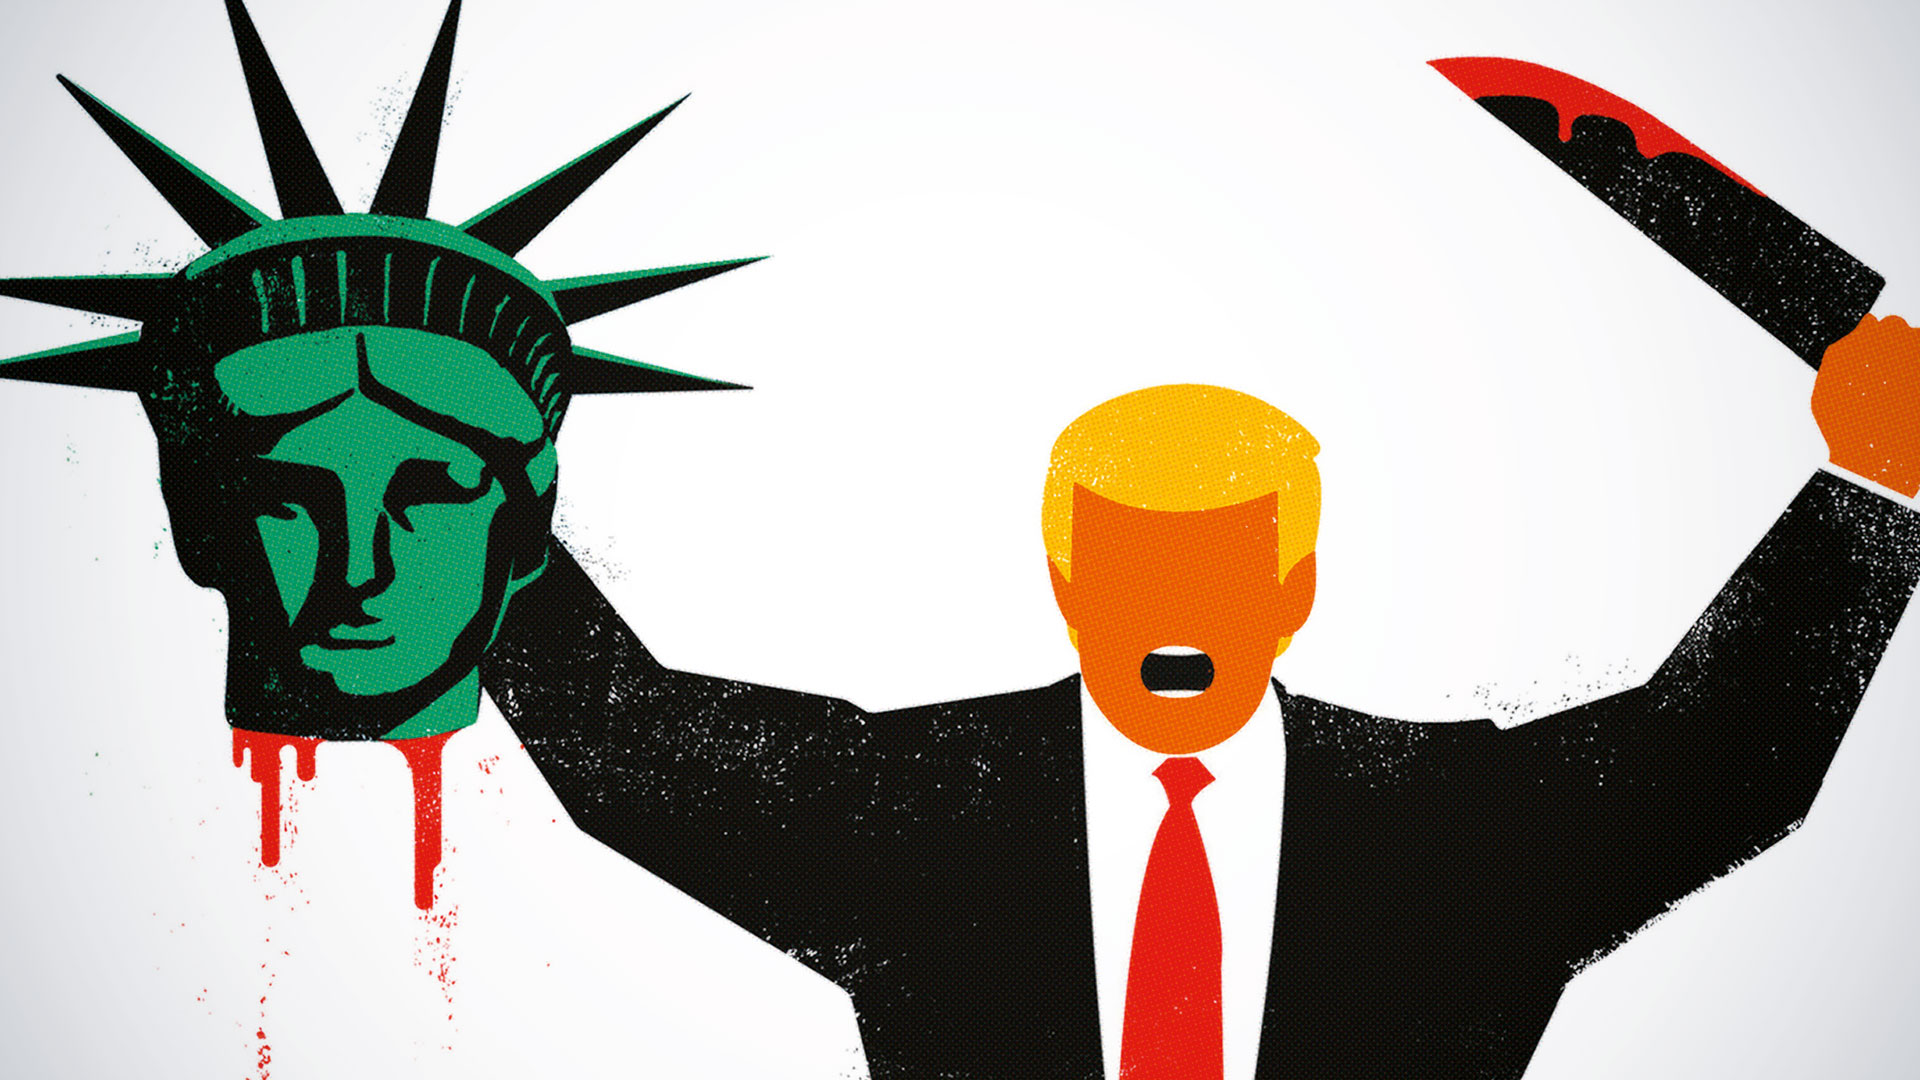 How one illustrator took aim at Trump – and went viral